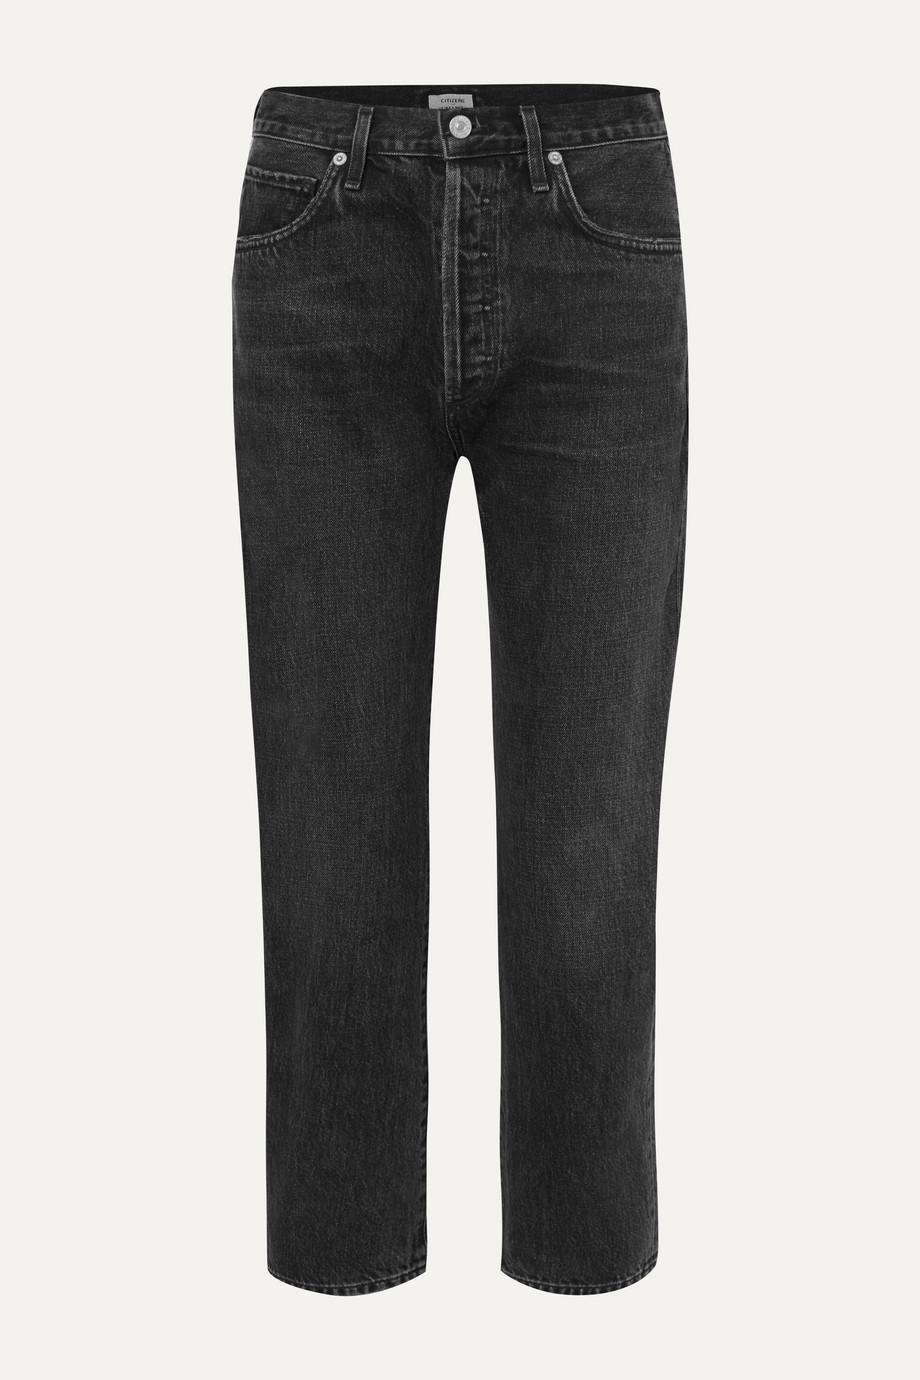 Citizens of Humanity McKenzie mid-rise straight-leg jeans